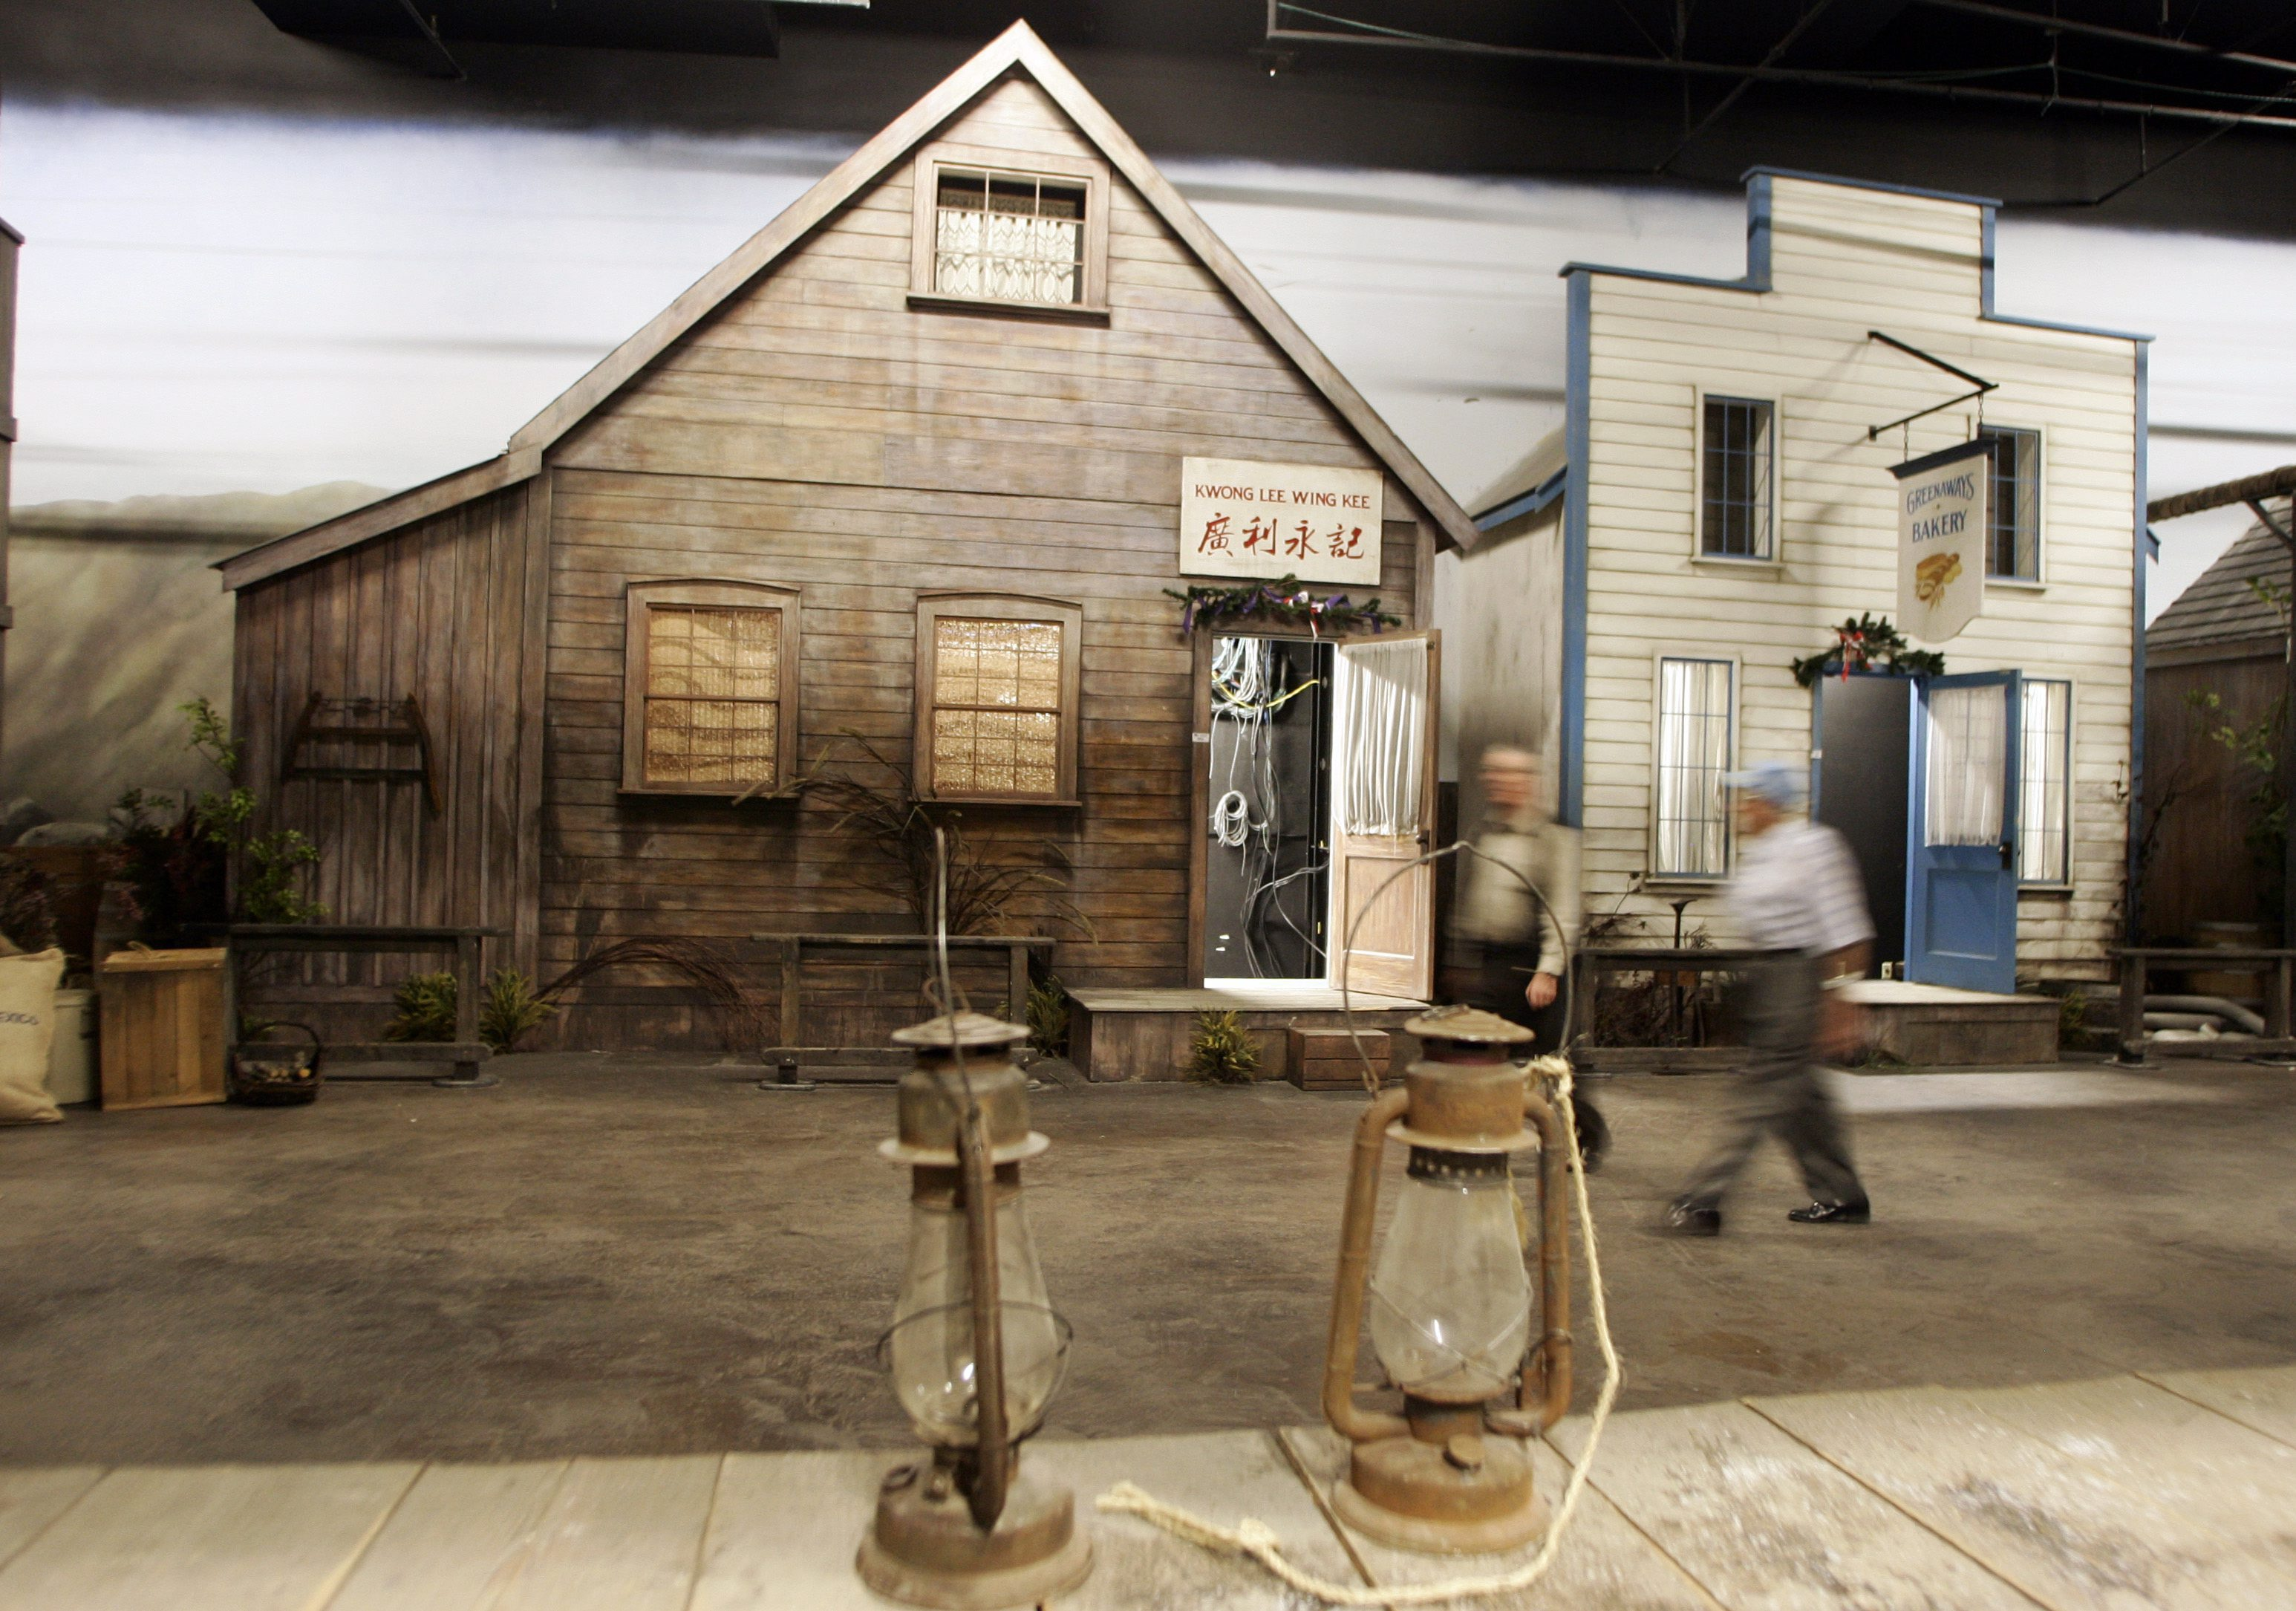 Potential bidders walk through the set of the historical mining town of Barkerville prior to the start of a unreserved auction for all contents of the former Storyeum theatrical museum in Vancouver, Thursday, August 16, 2007. (CP PHOTO/Richard Lam)